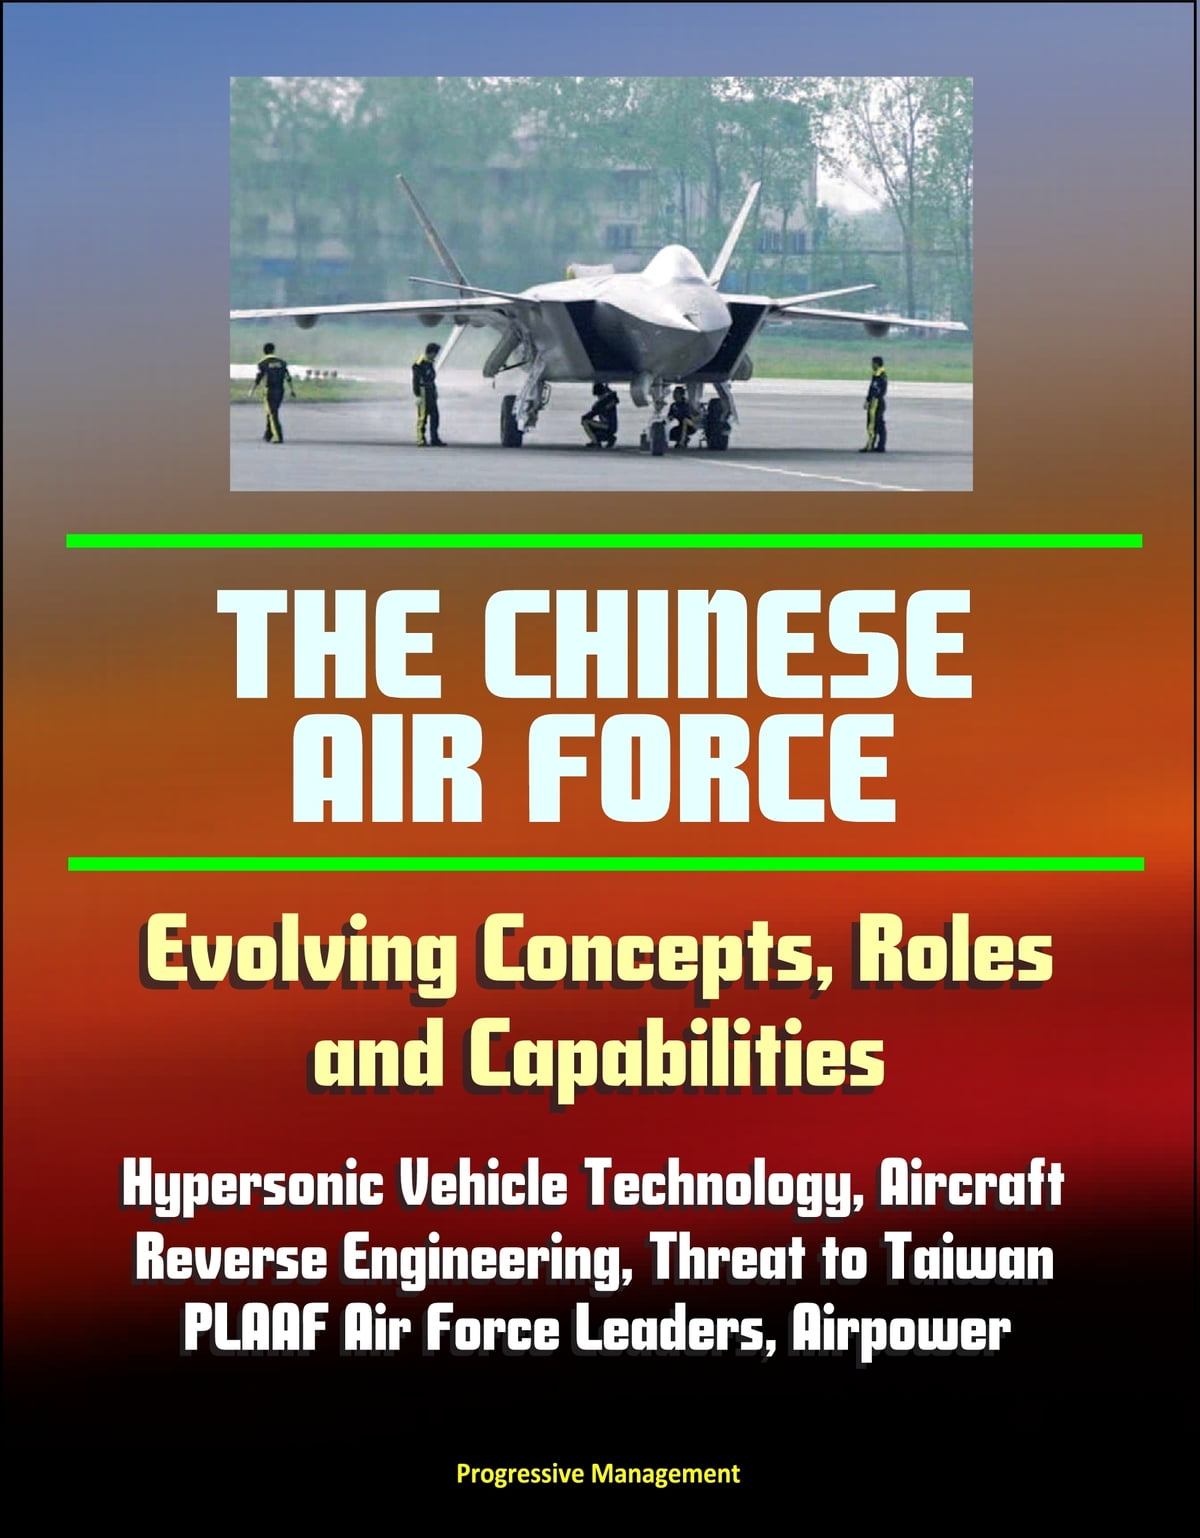 The Chinese Air Force: Evolving Concepts, Roles, and Capabilities -  Hypersonic Vehicle Technology, Aircraft, Reverse Engineering, Threat to  Taiwan,